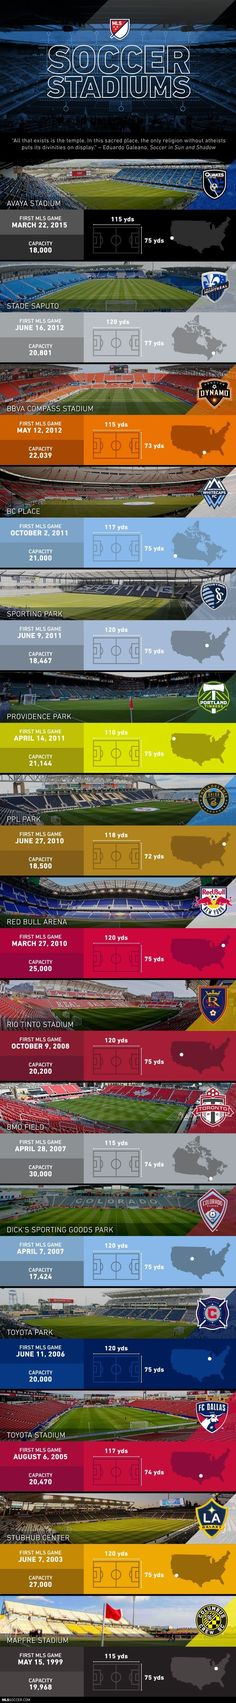 "The soccer-primary (I hate ""soccer-specific"") stadiums joining MLS ever since the Columbus Crew broke away from gargantuan gridiron stadiums in the late and revitalized American sporting architecture. Soccer Stadium, Football Stadiums, Football Soccer, Football Kits, Top Soccer, Soccer Fans, Soccer Post, Soccer Stuff, Stadium Architecture"